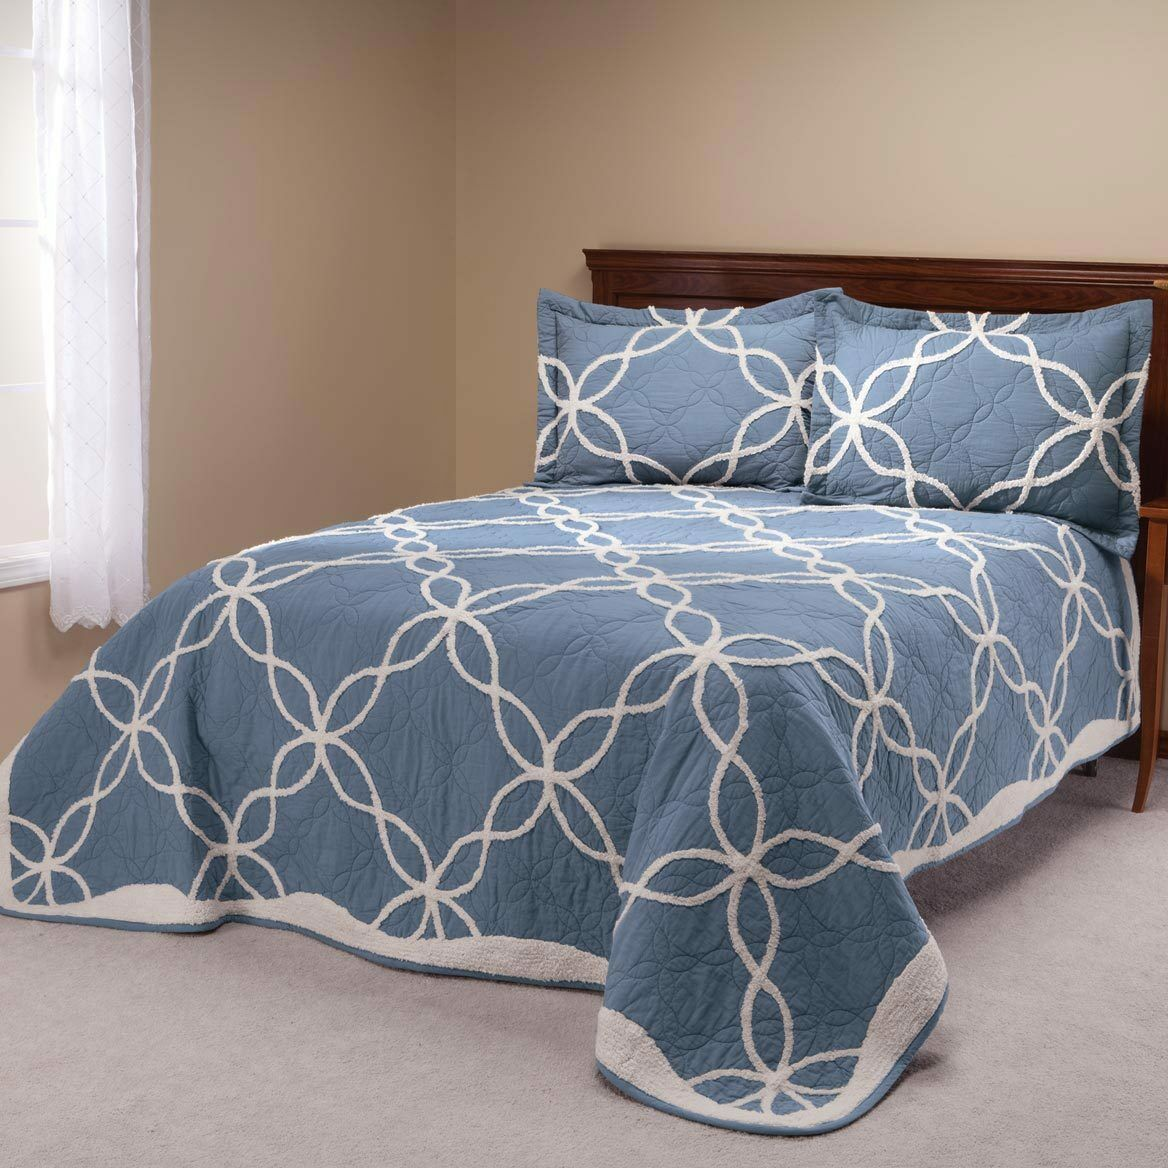 The Sophie Quilt with Chenille Tufting by OakRidgeTM